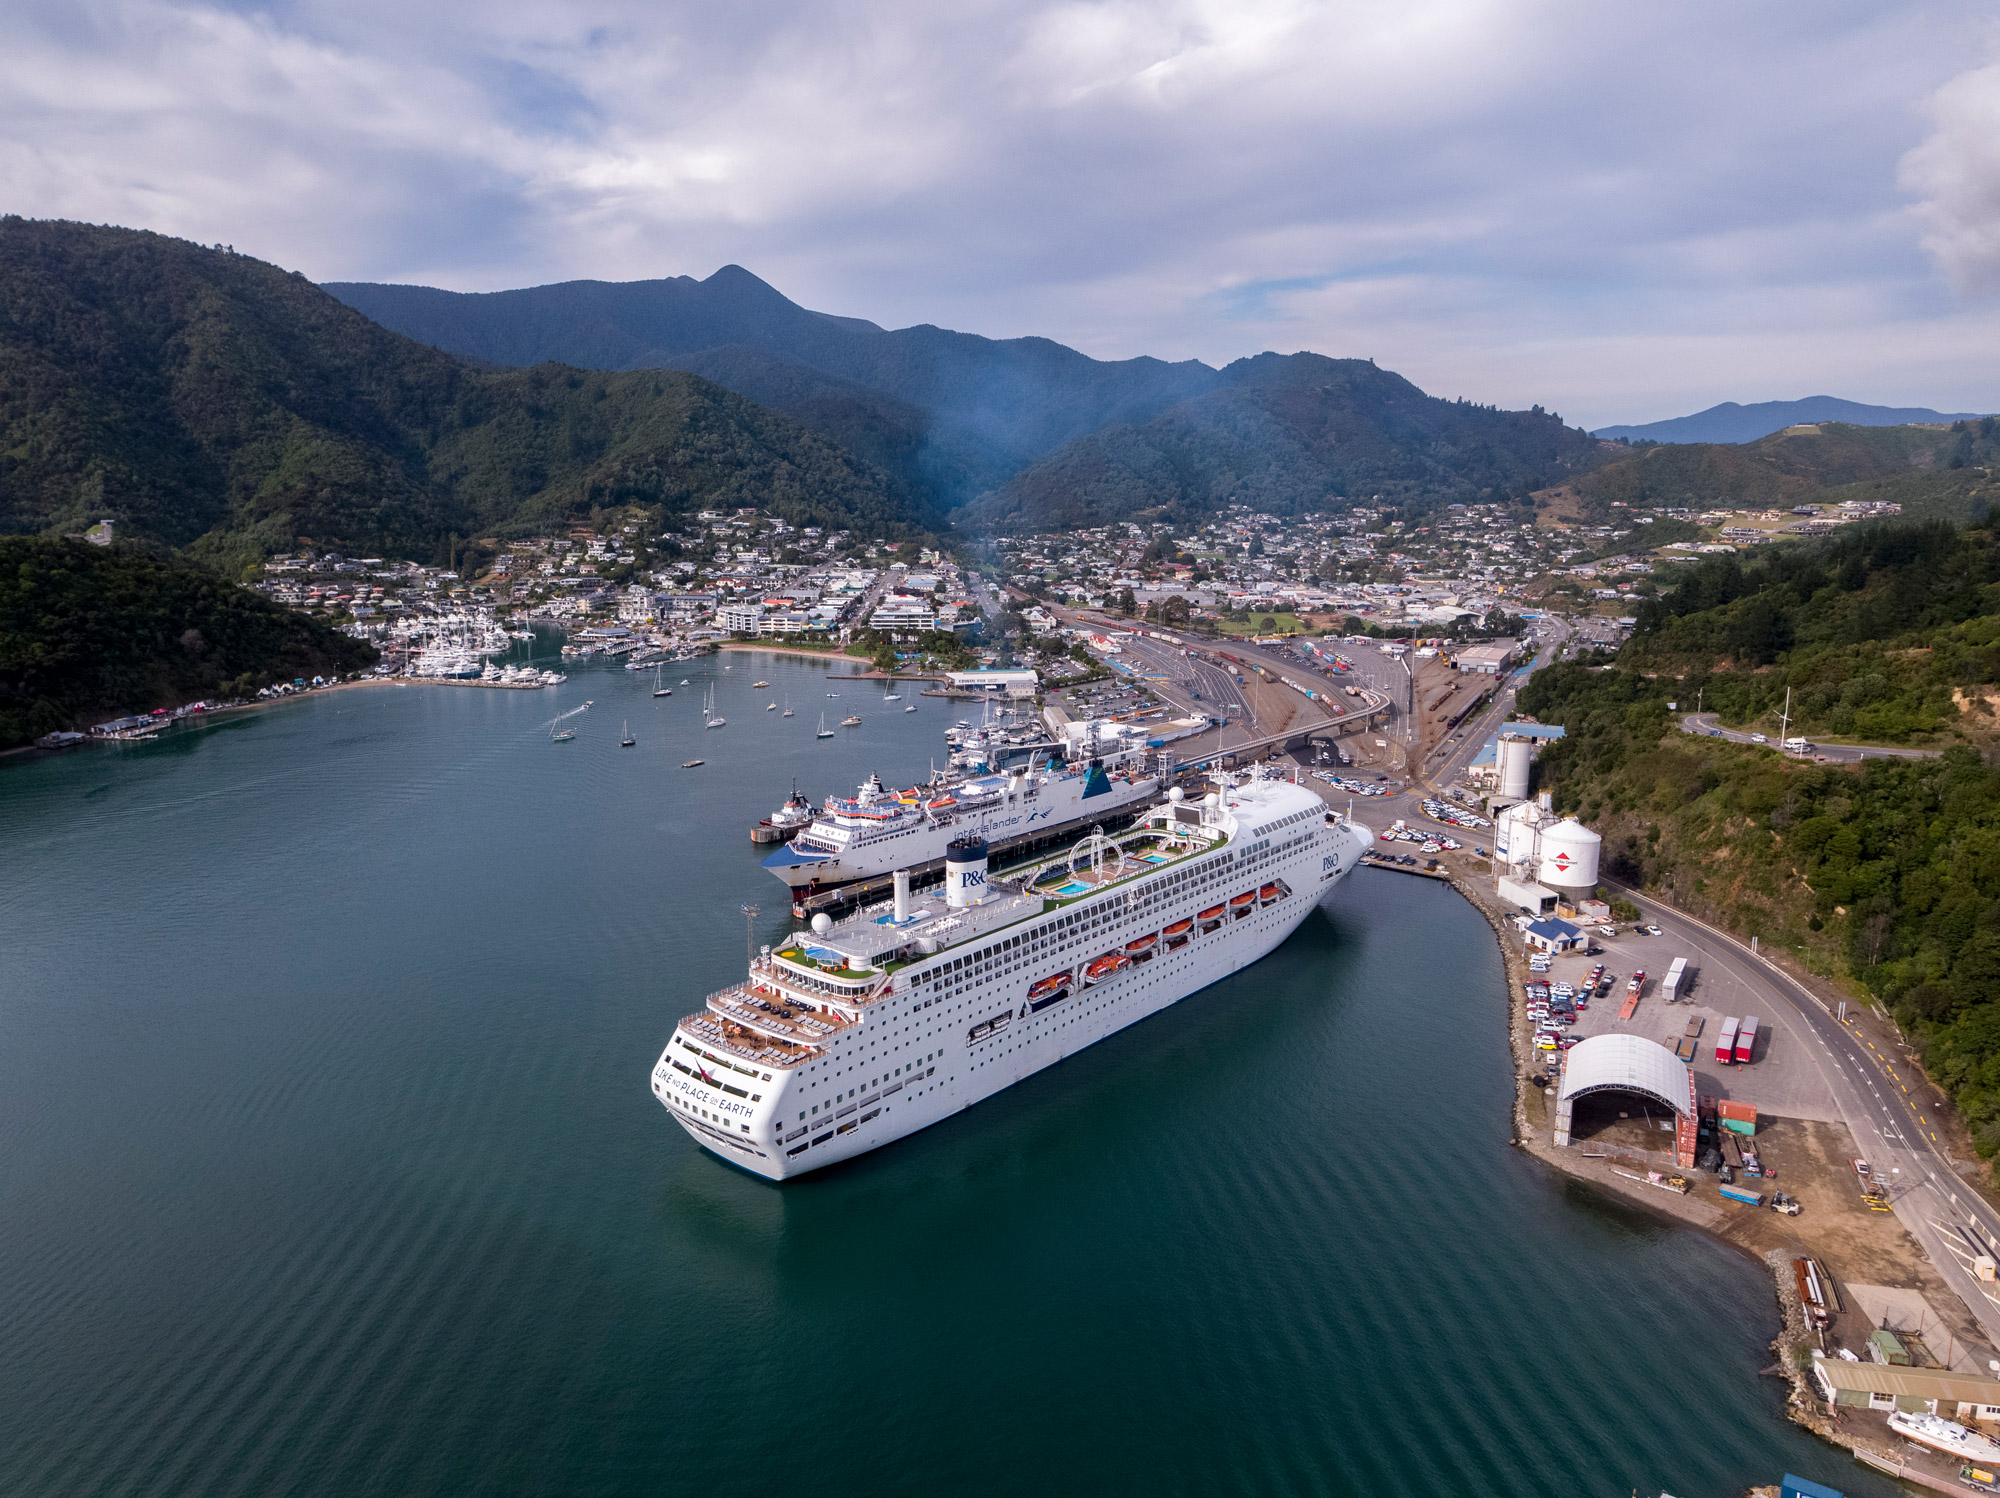 picton-drone-footage-aerial-photography